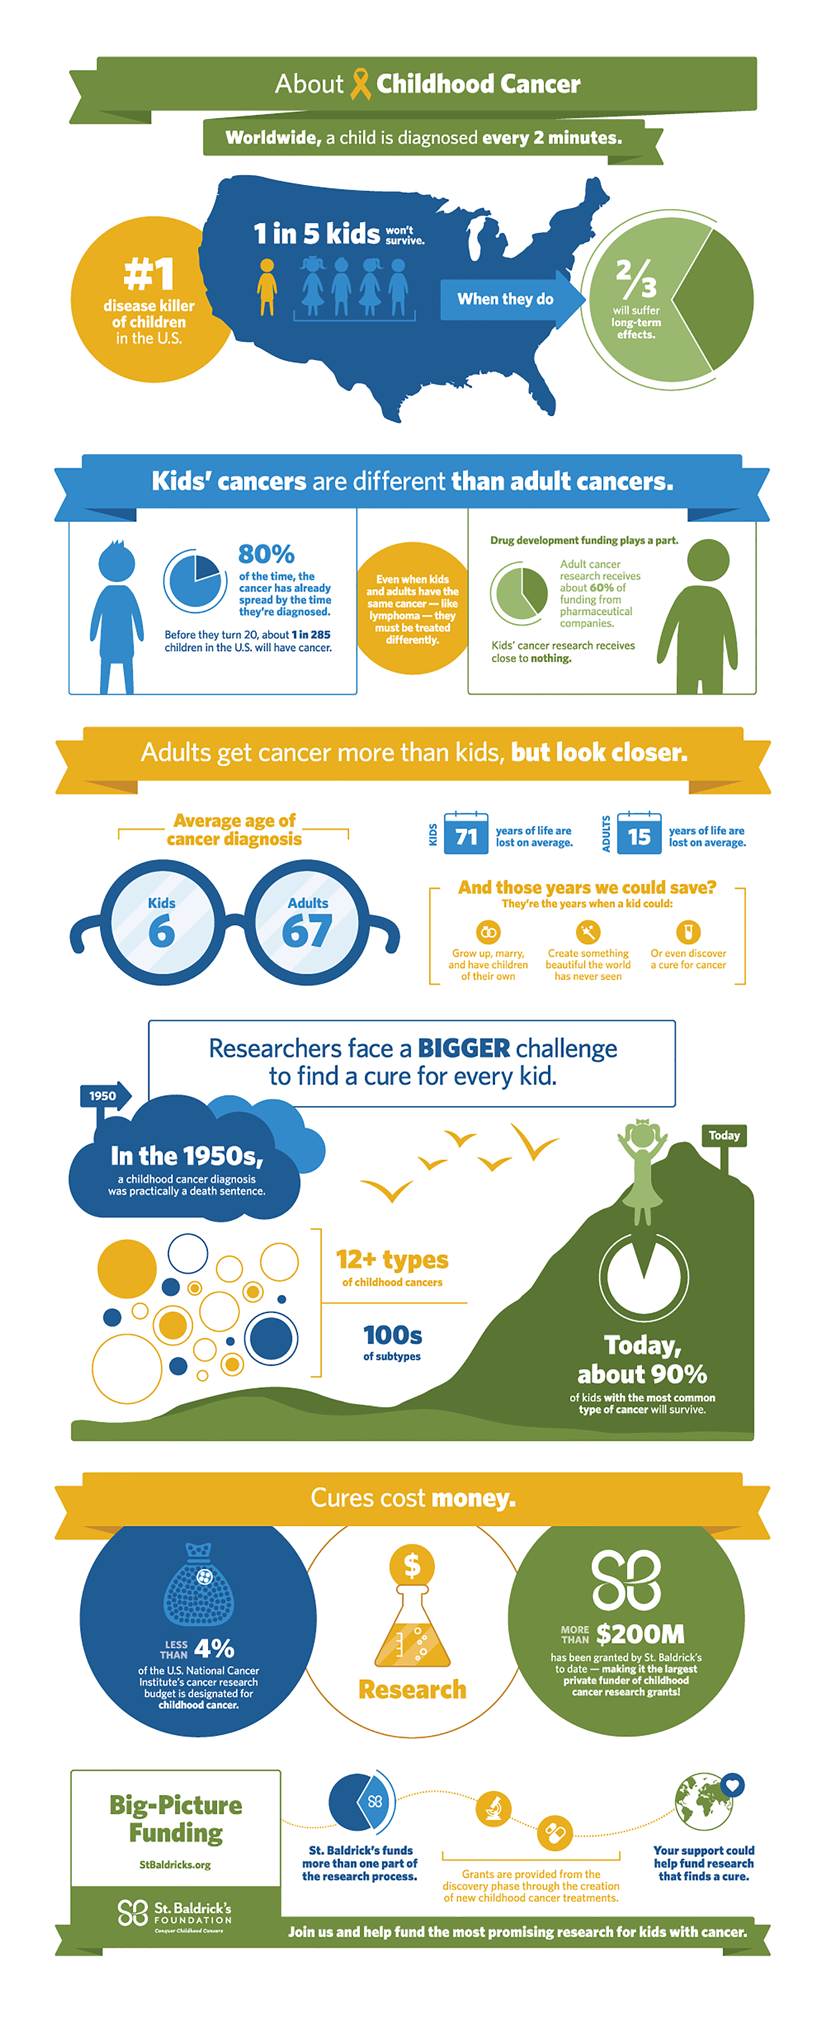 About Childhood Cancer Infographic